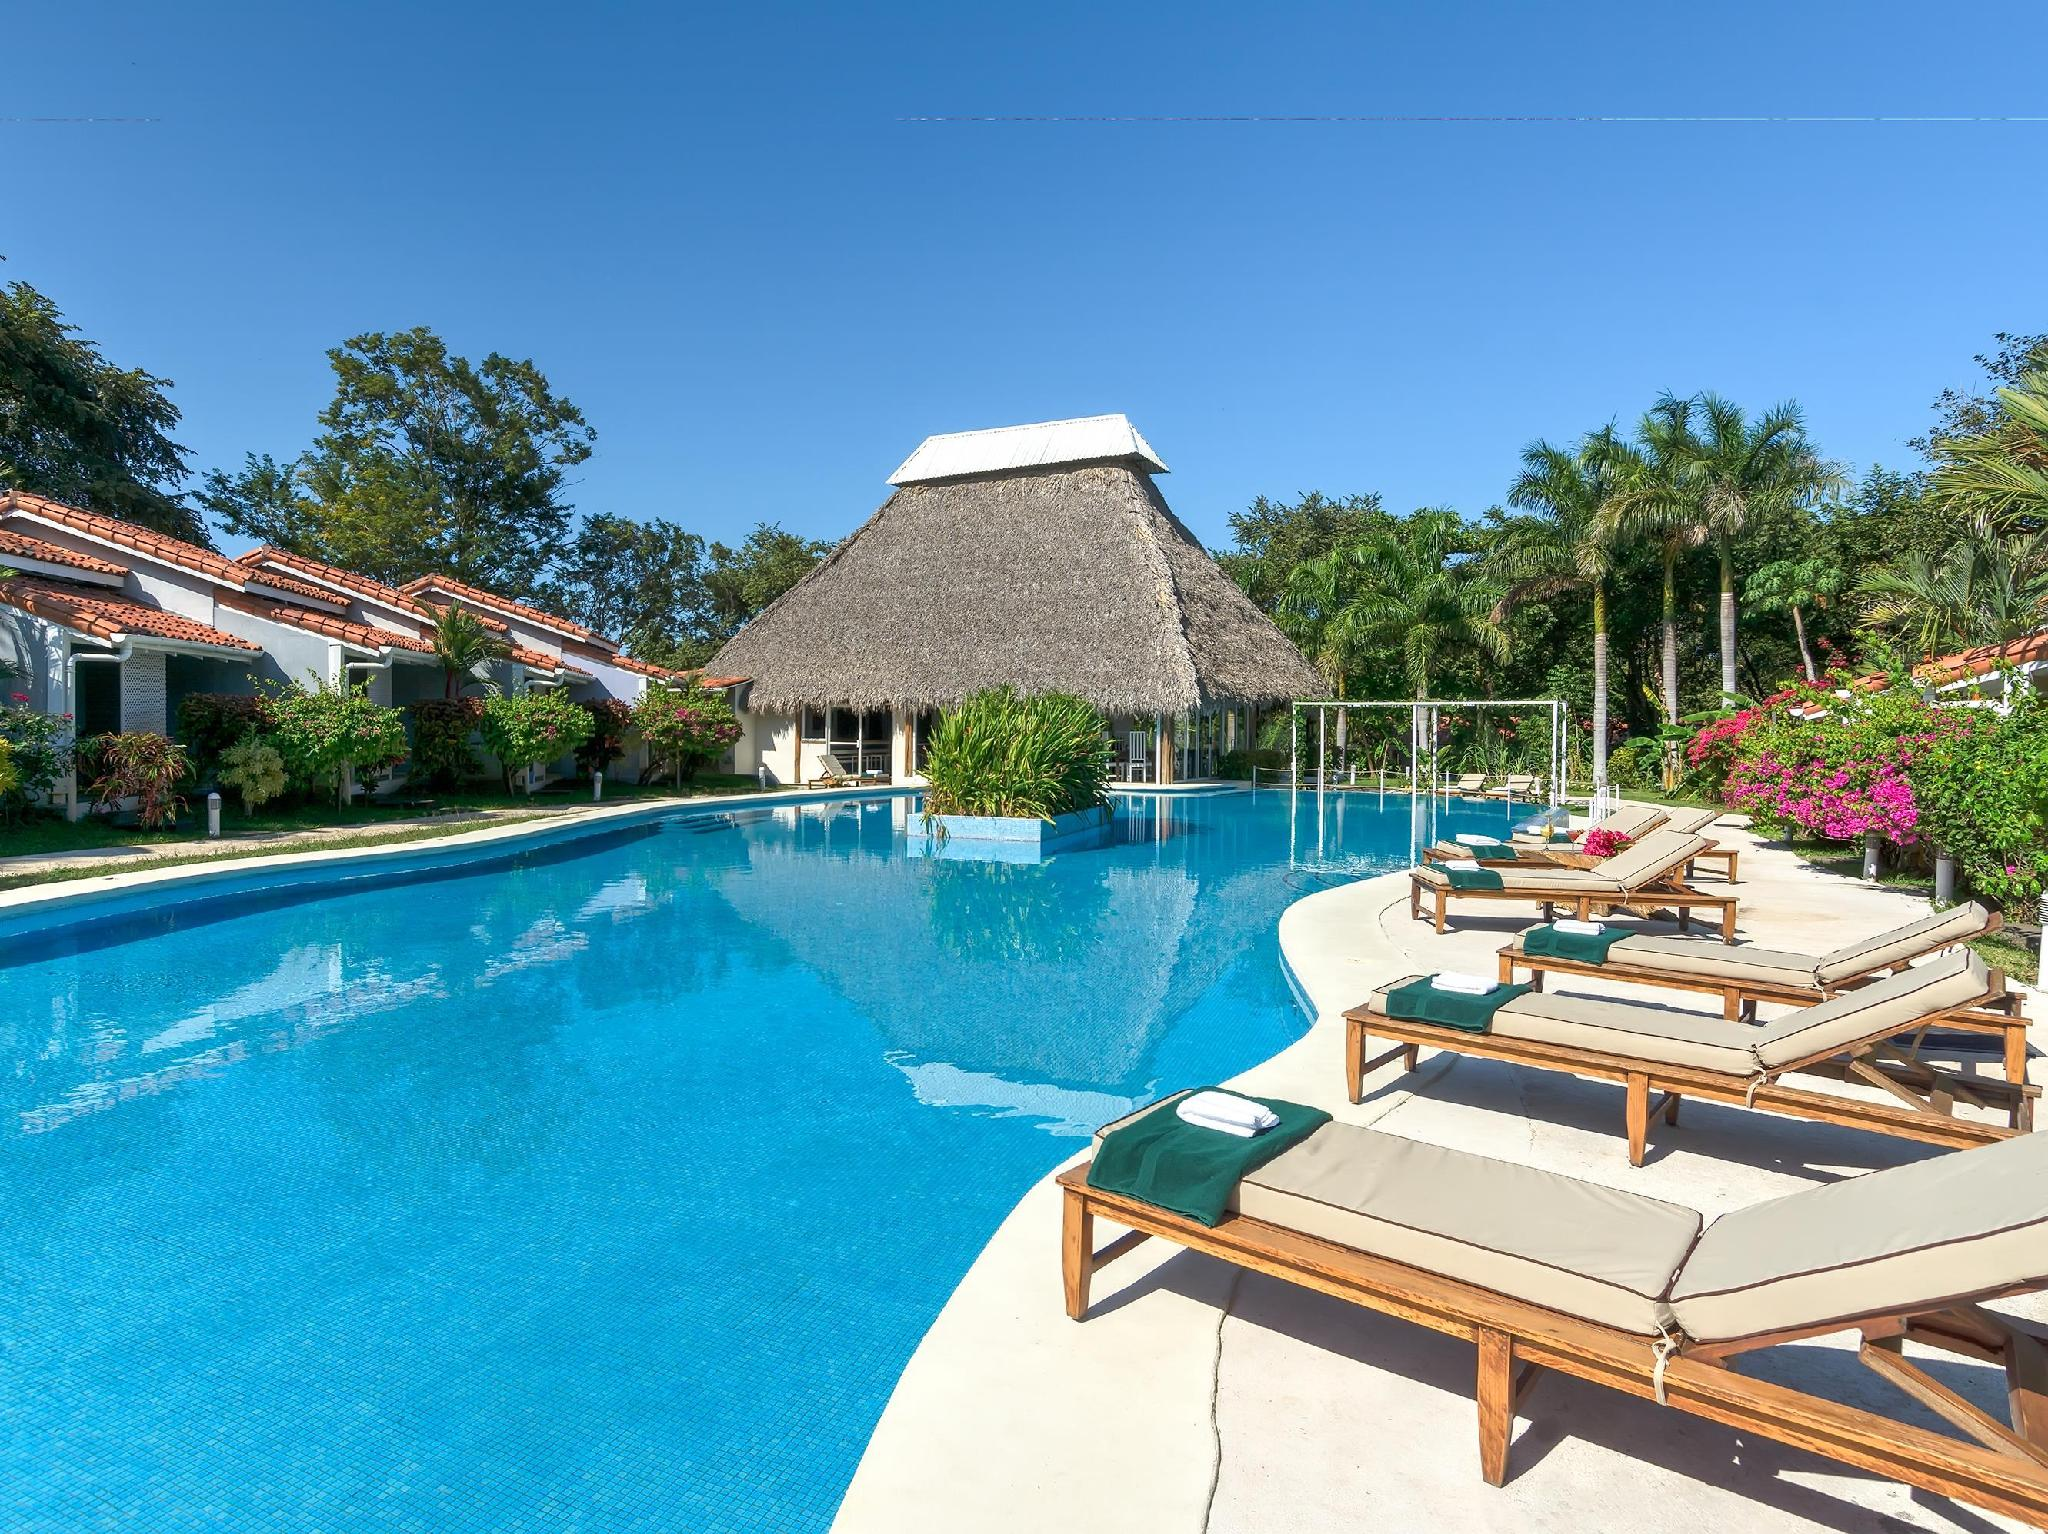 Best Western Camino a Tamarindo Hotel - Hotels and Accommodation in Costa Rica, Central America And Caribbean